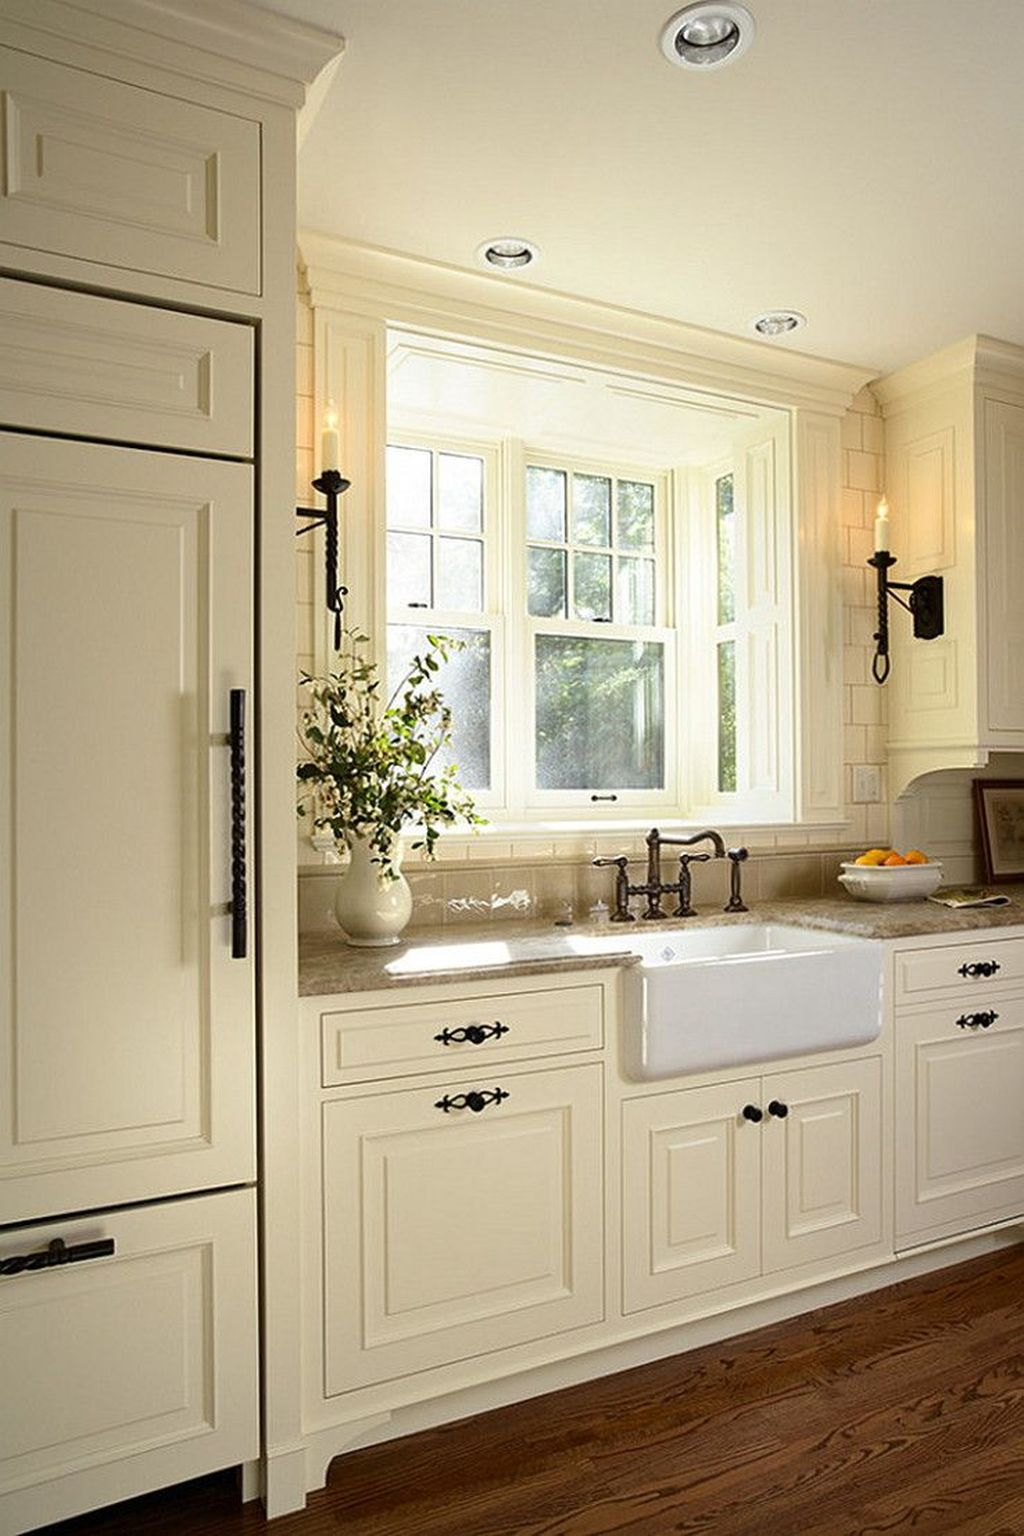 Nice Rustic Farmhouse Kitchen Cabinets Design Ideas 27